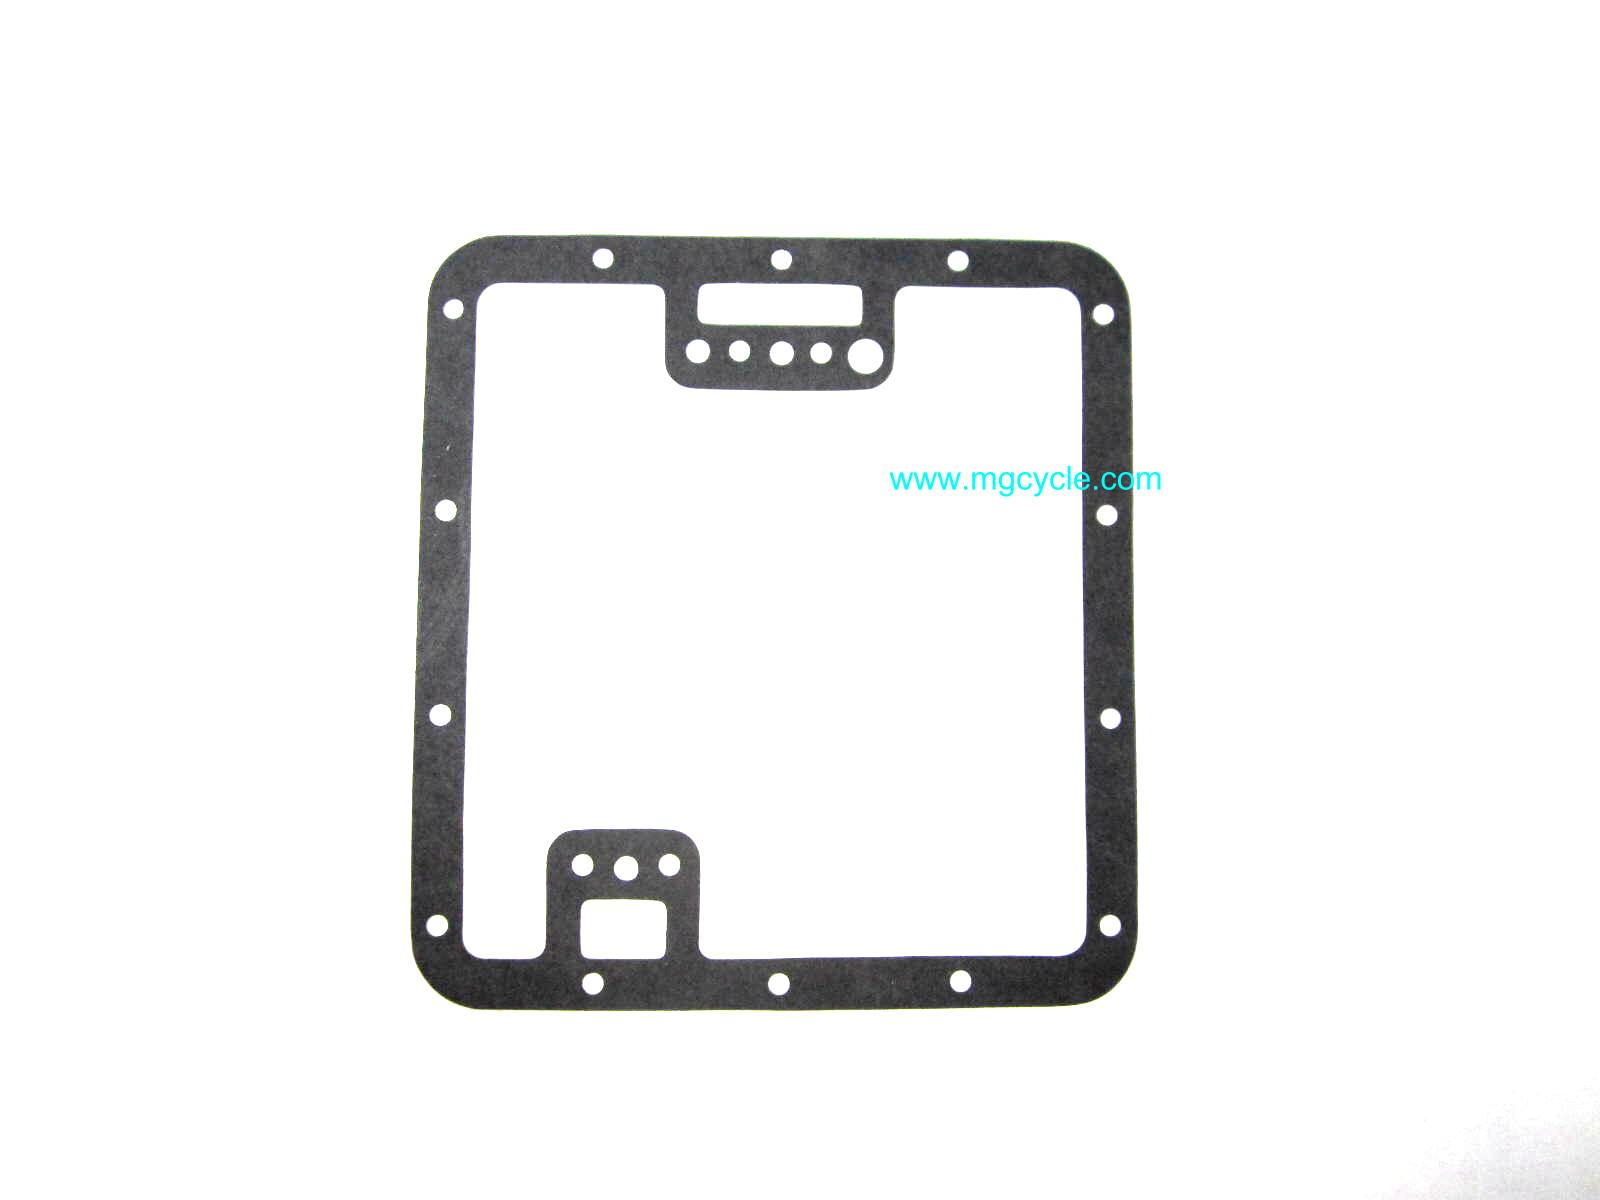 Oil pan gasket most Moto Guzzi big twins 1967-2013 GU14003600